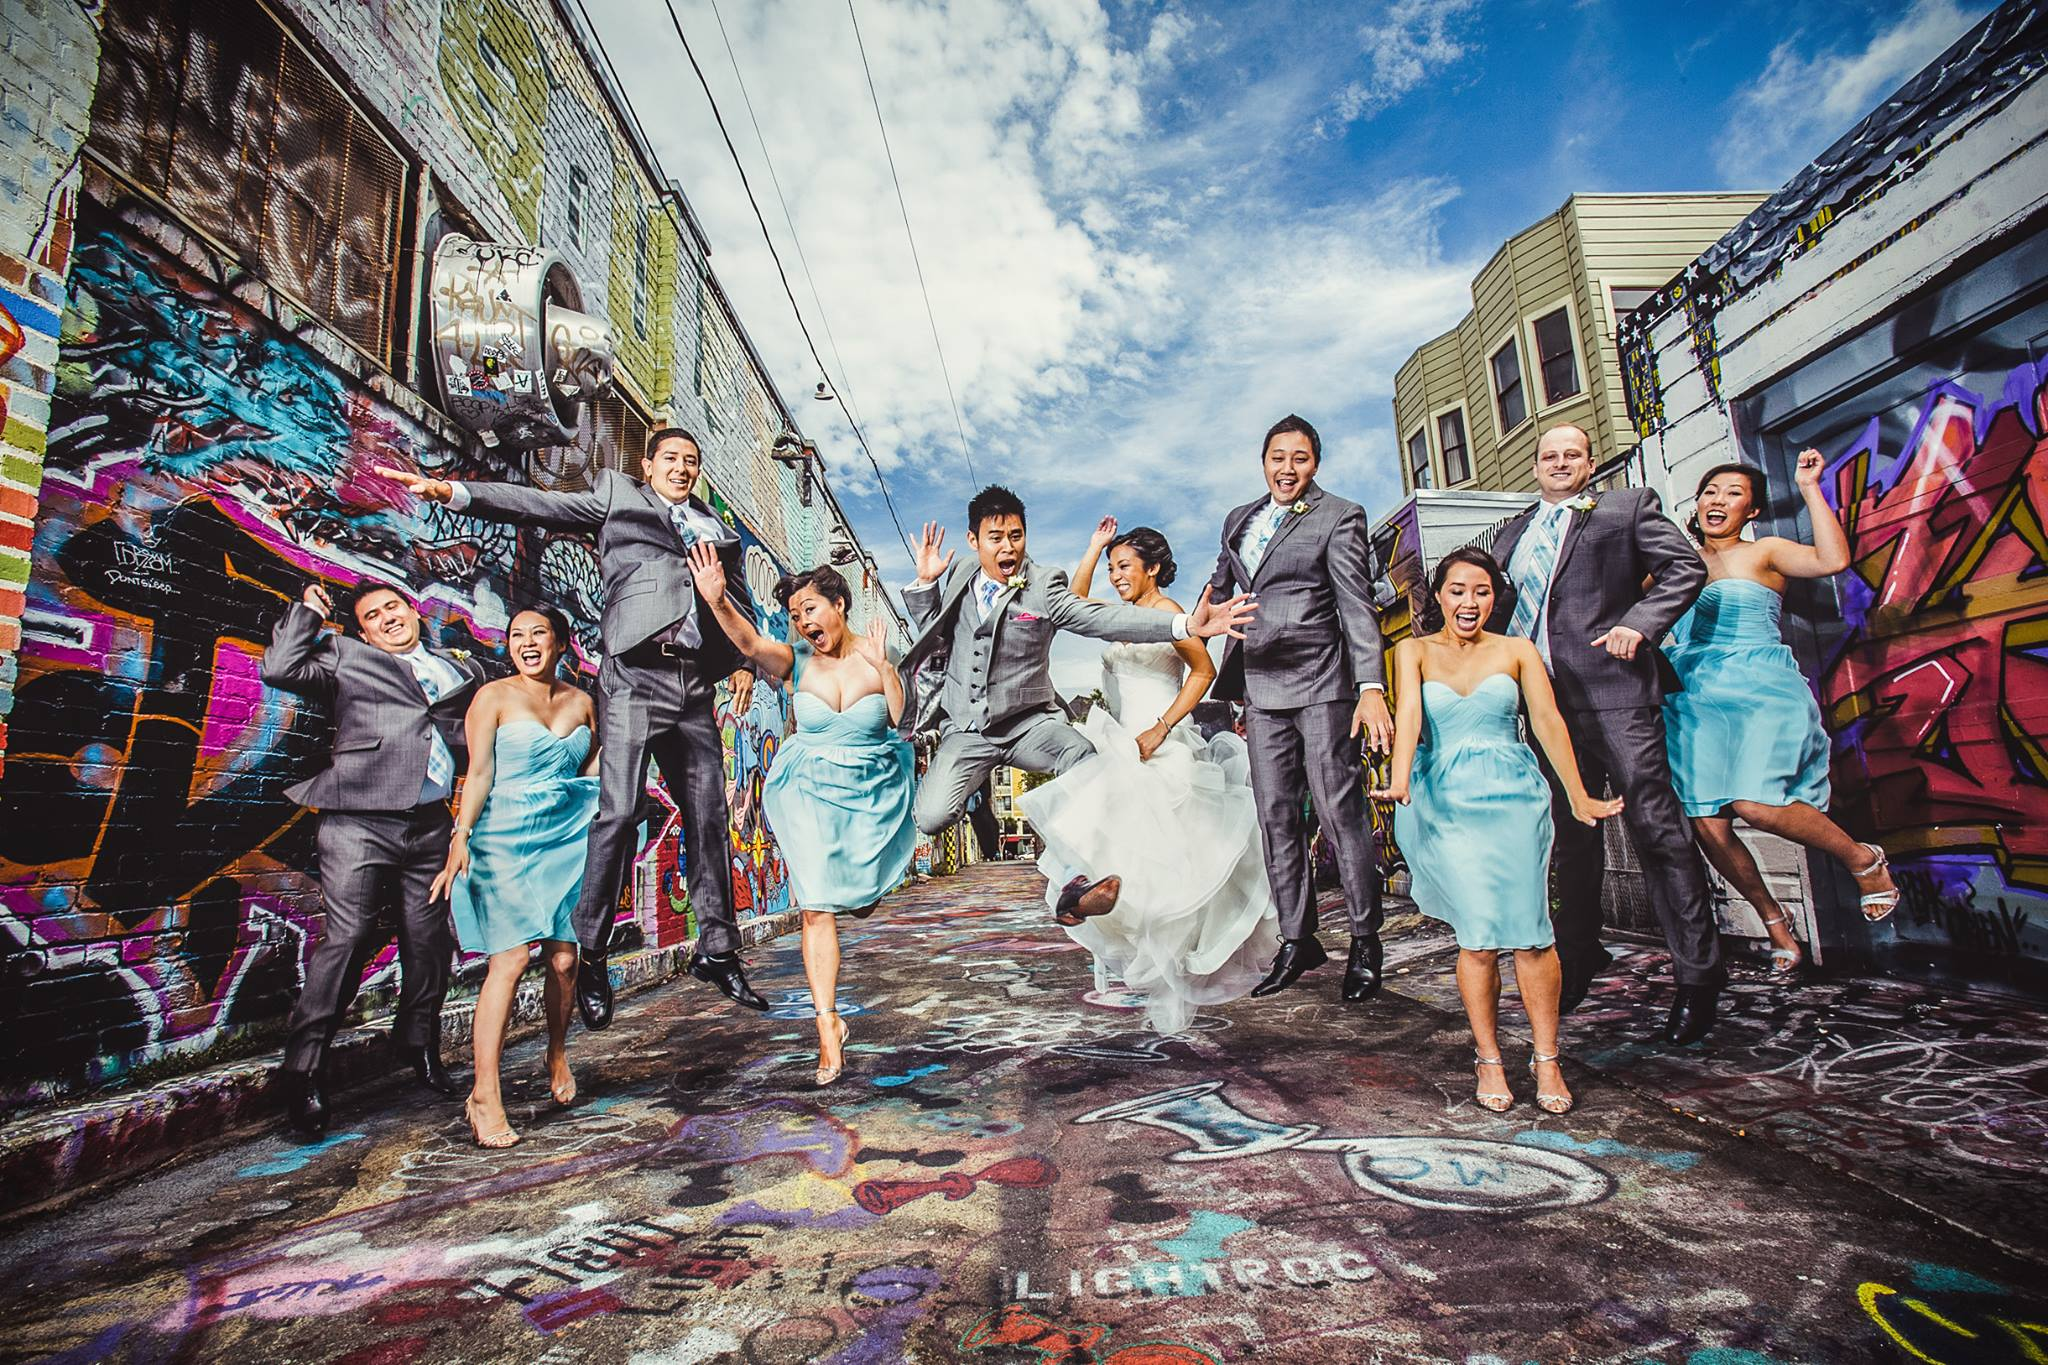 A jumpshot of bride and groom along with the bridesmaids and groomsmen